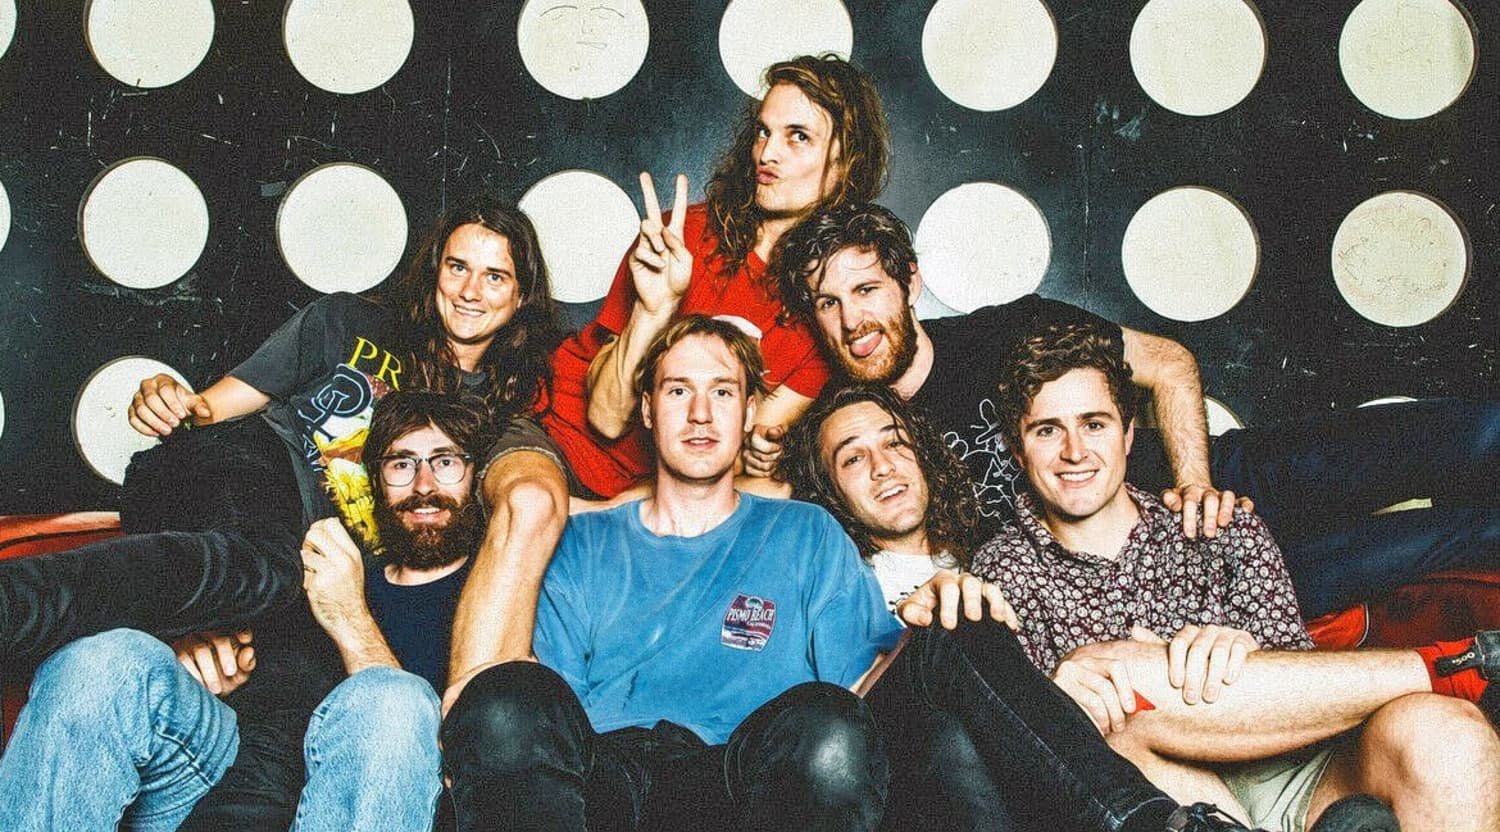 King Gizzard & The Lizard Wizard, in arrivo un film-concerto e un disco dal vivo